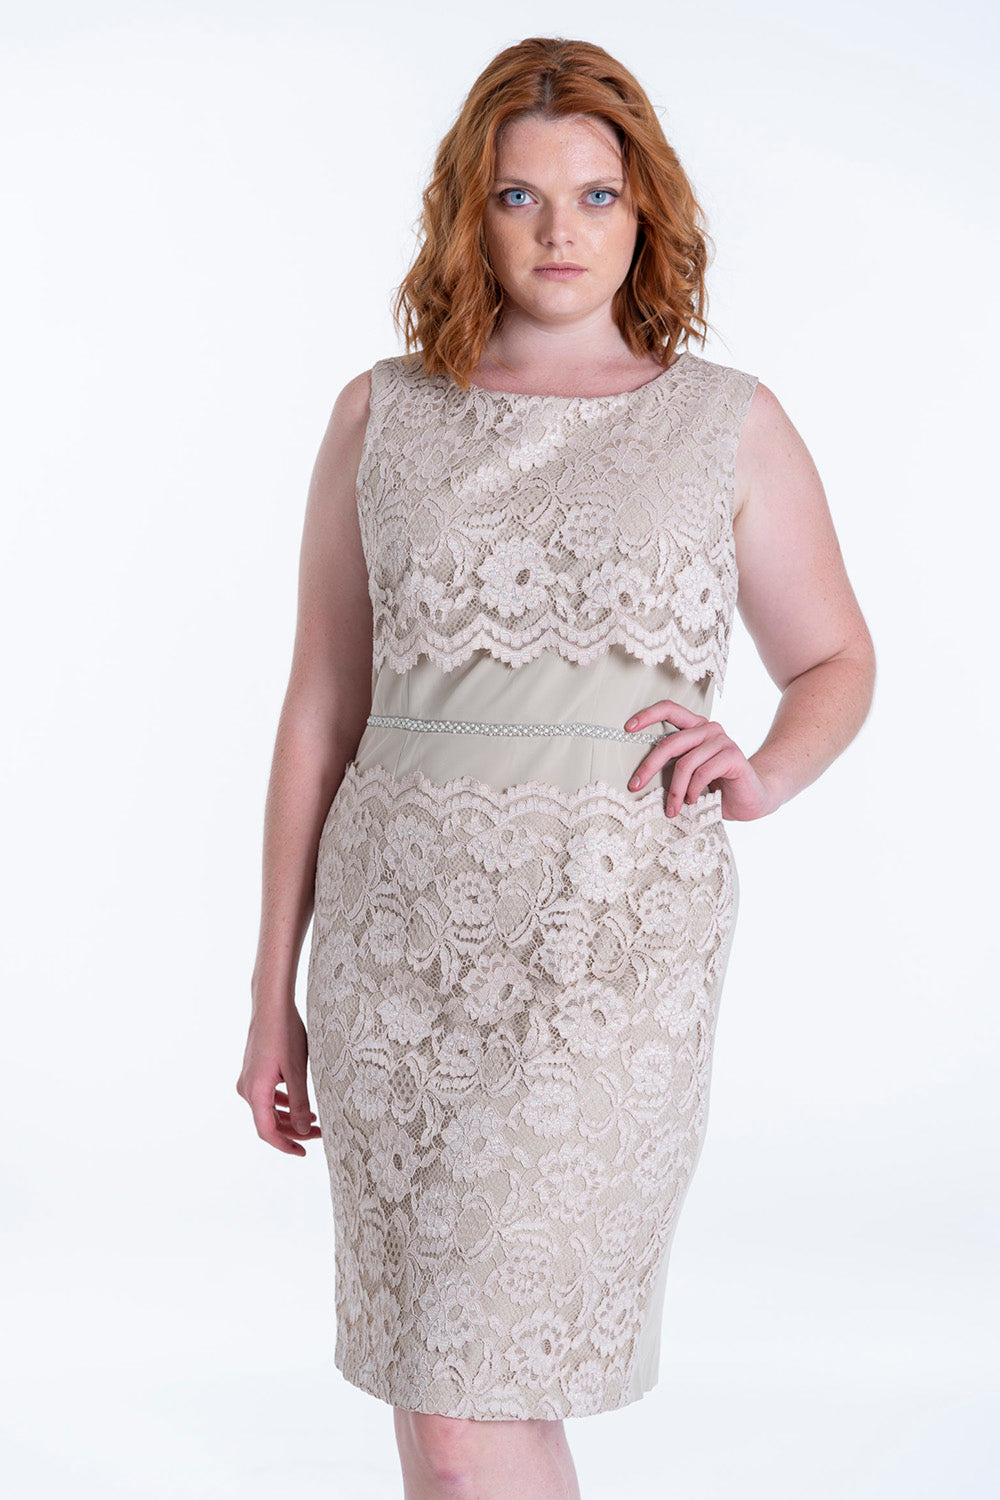 Lace co-ord dress with  pearls in waist